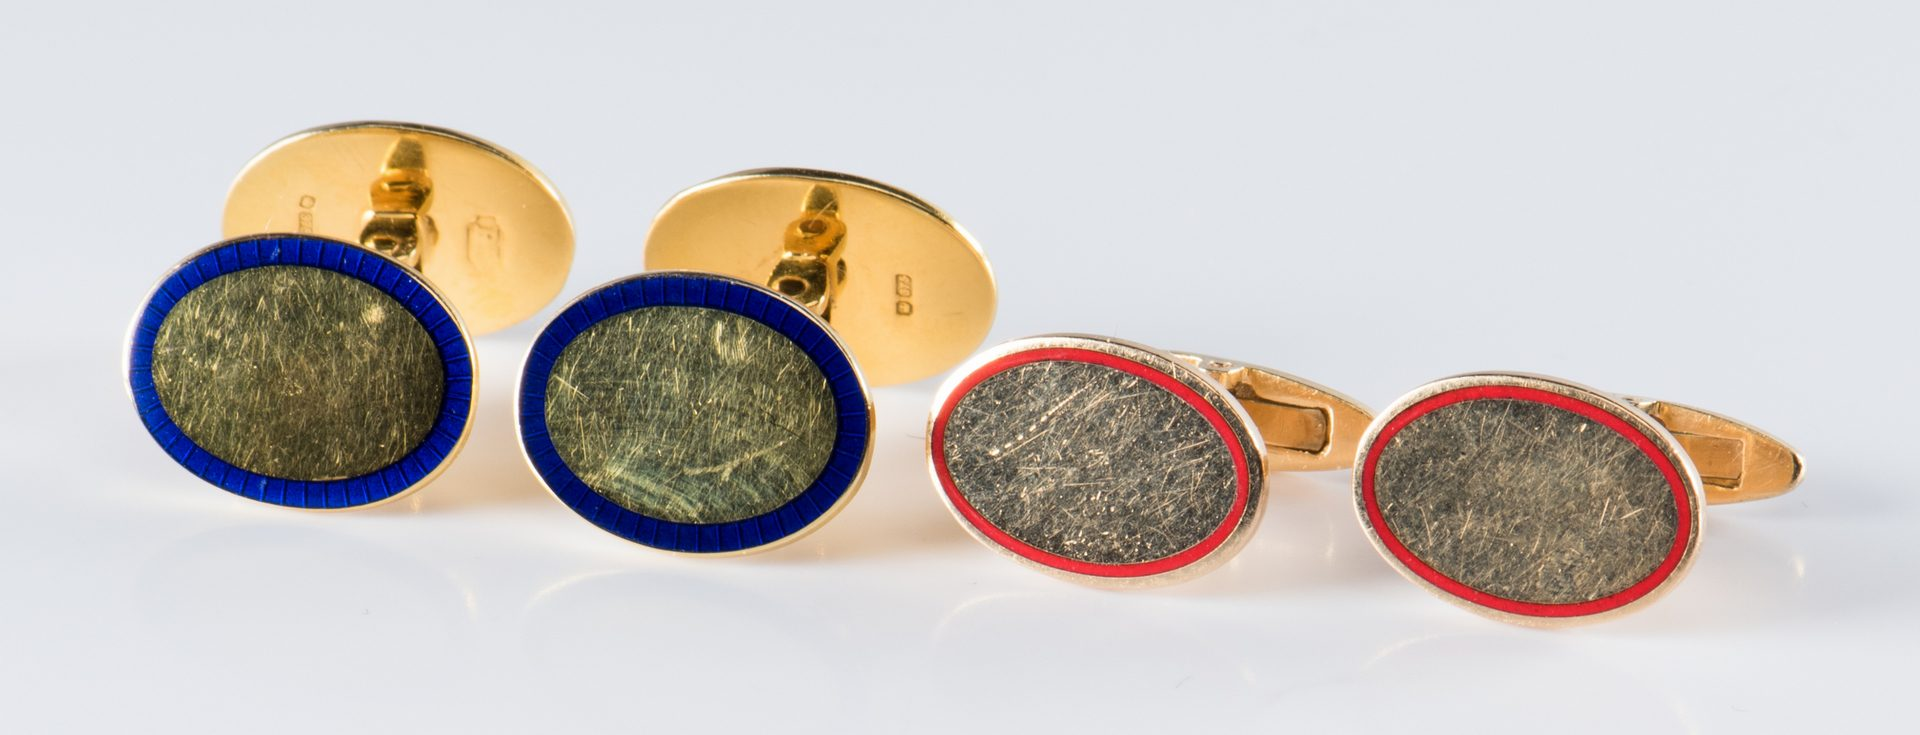 Lot 891: 2 Pair Men's Gold Cufflinks